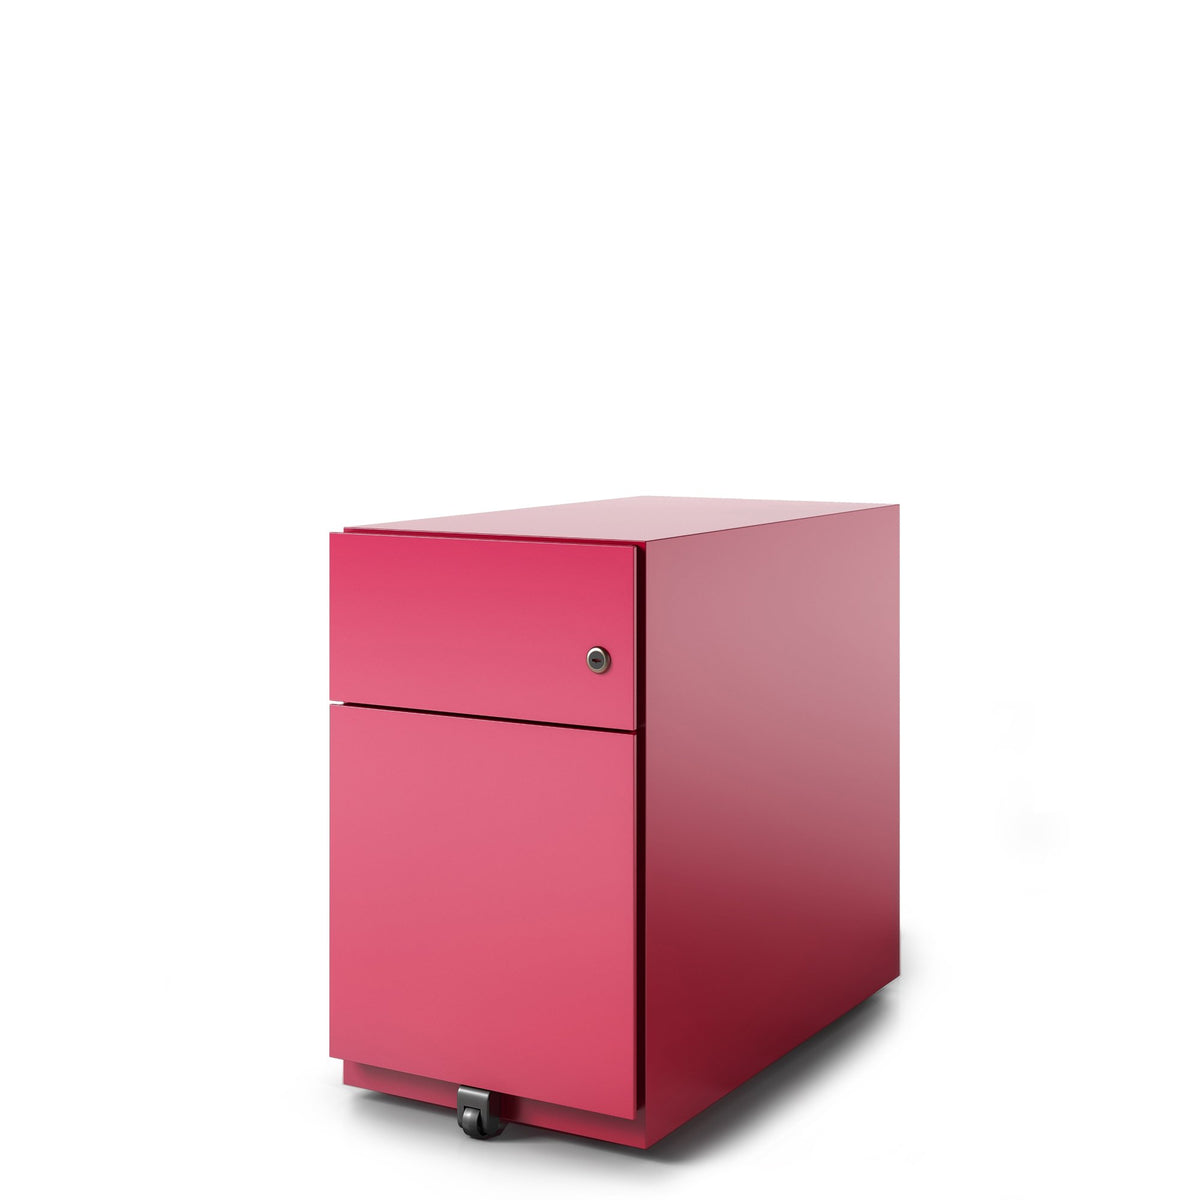 Bisley Office Note Slimline Mobile Cardinal Red Pedestal